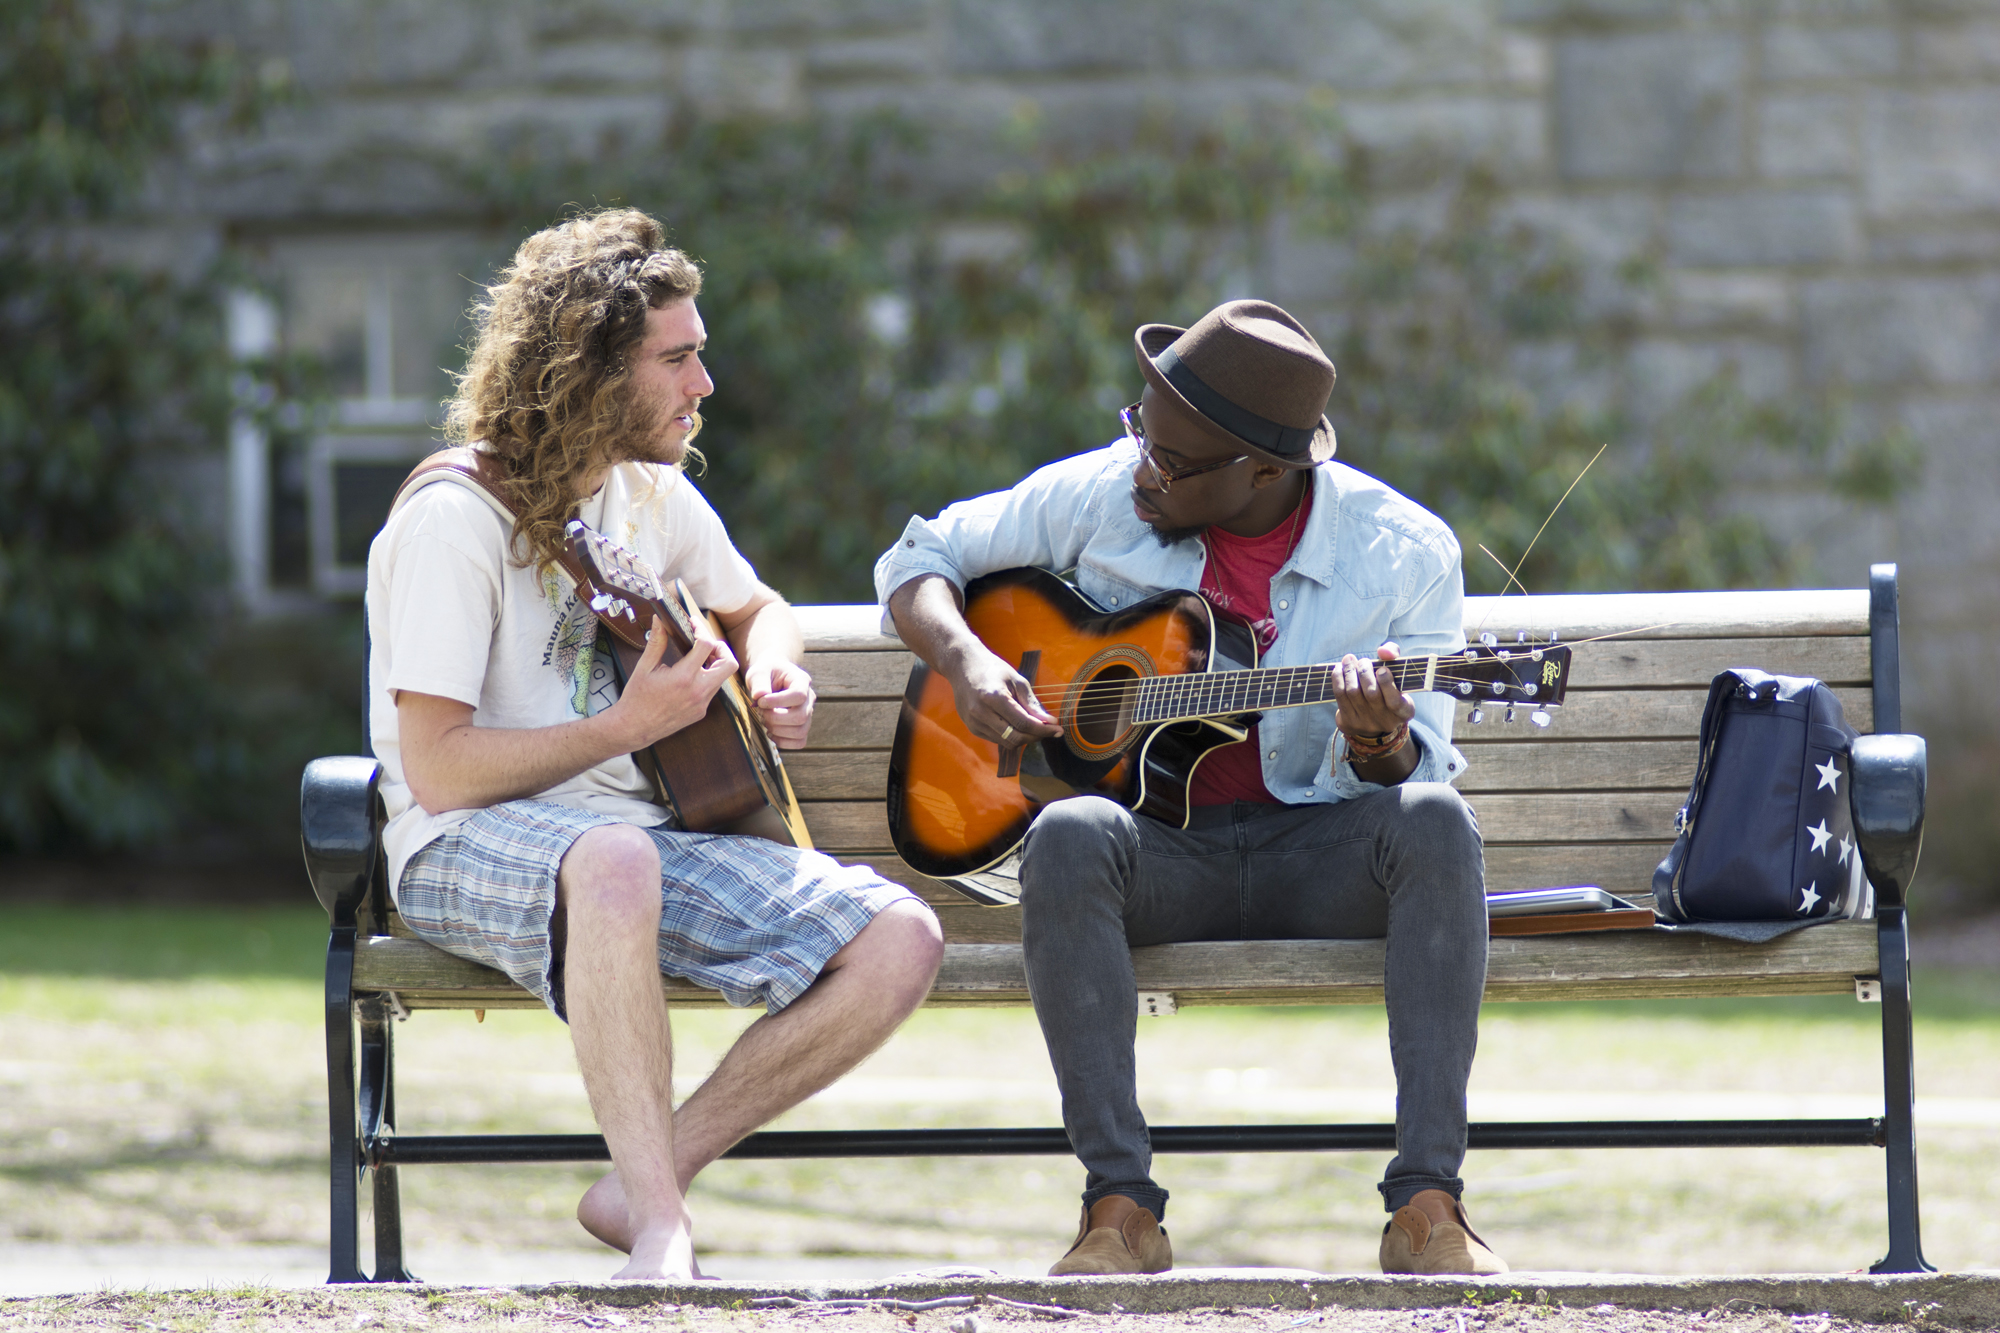 students playing guitar on a park bench